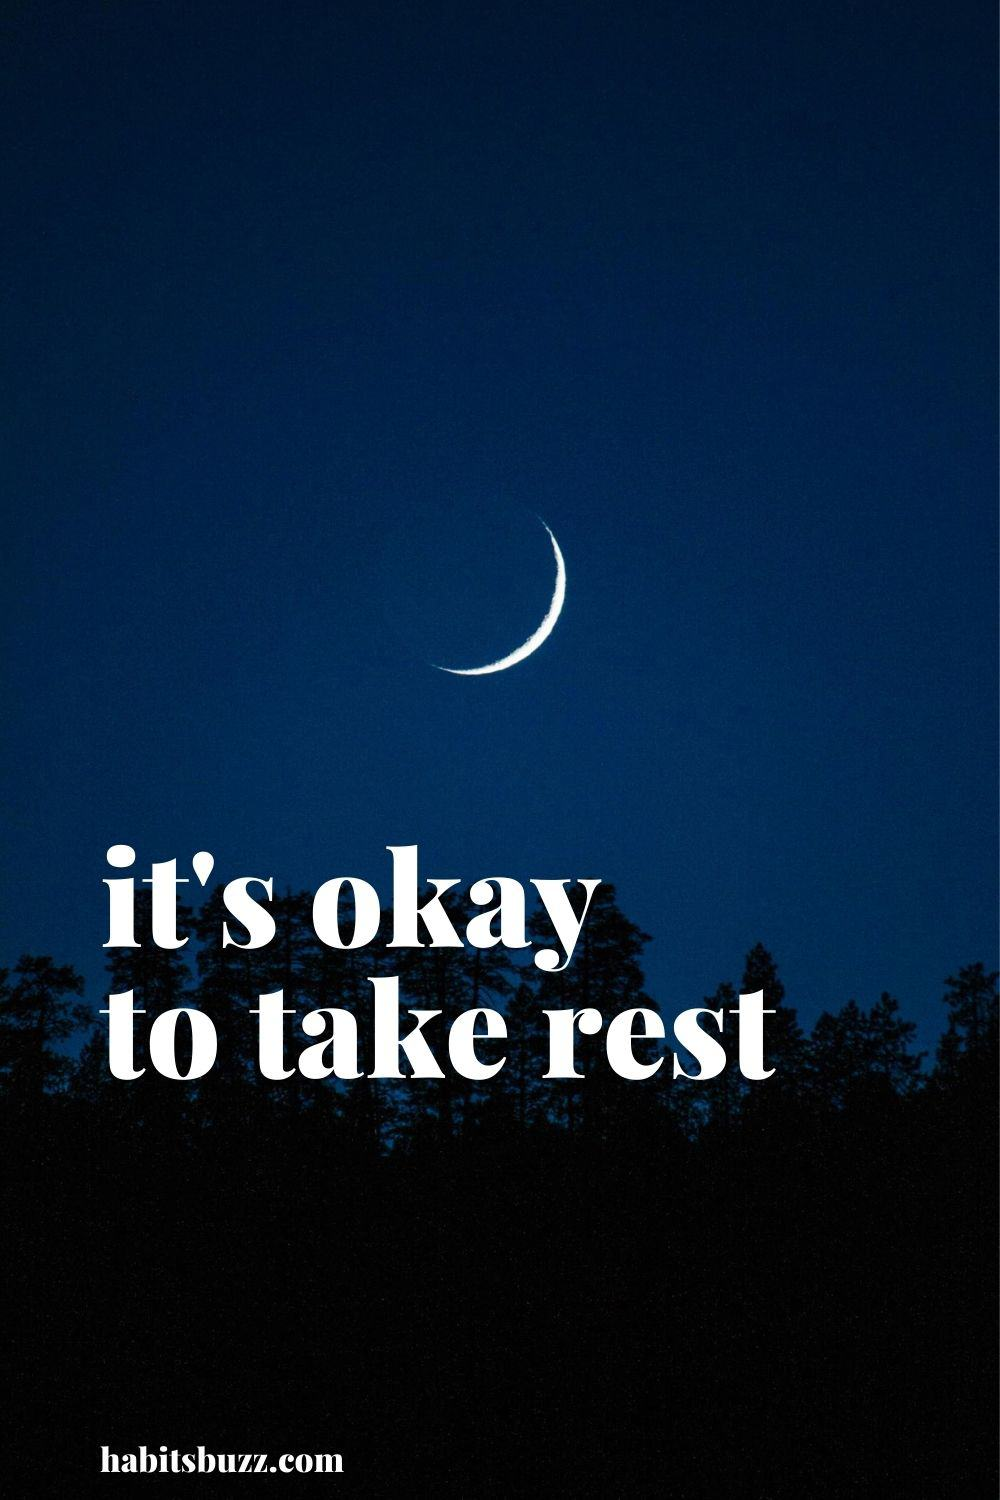 it's okay to take rest -mantras to get through bad times in life